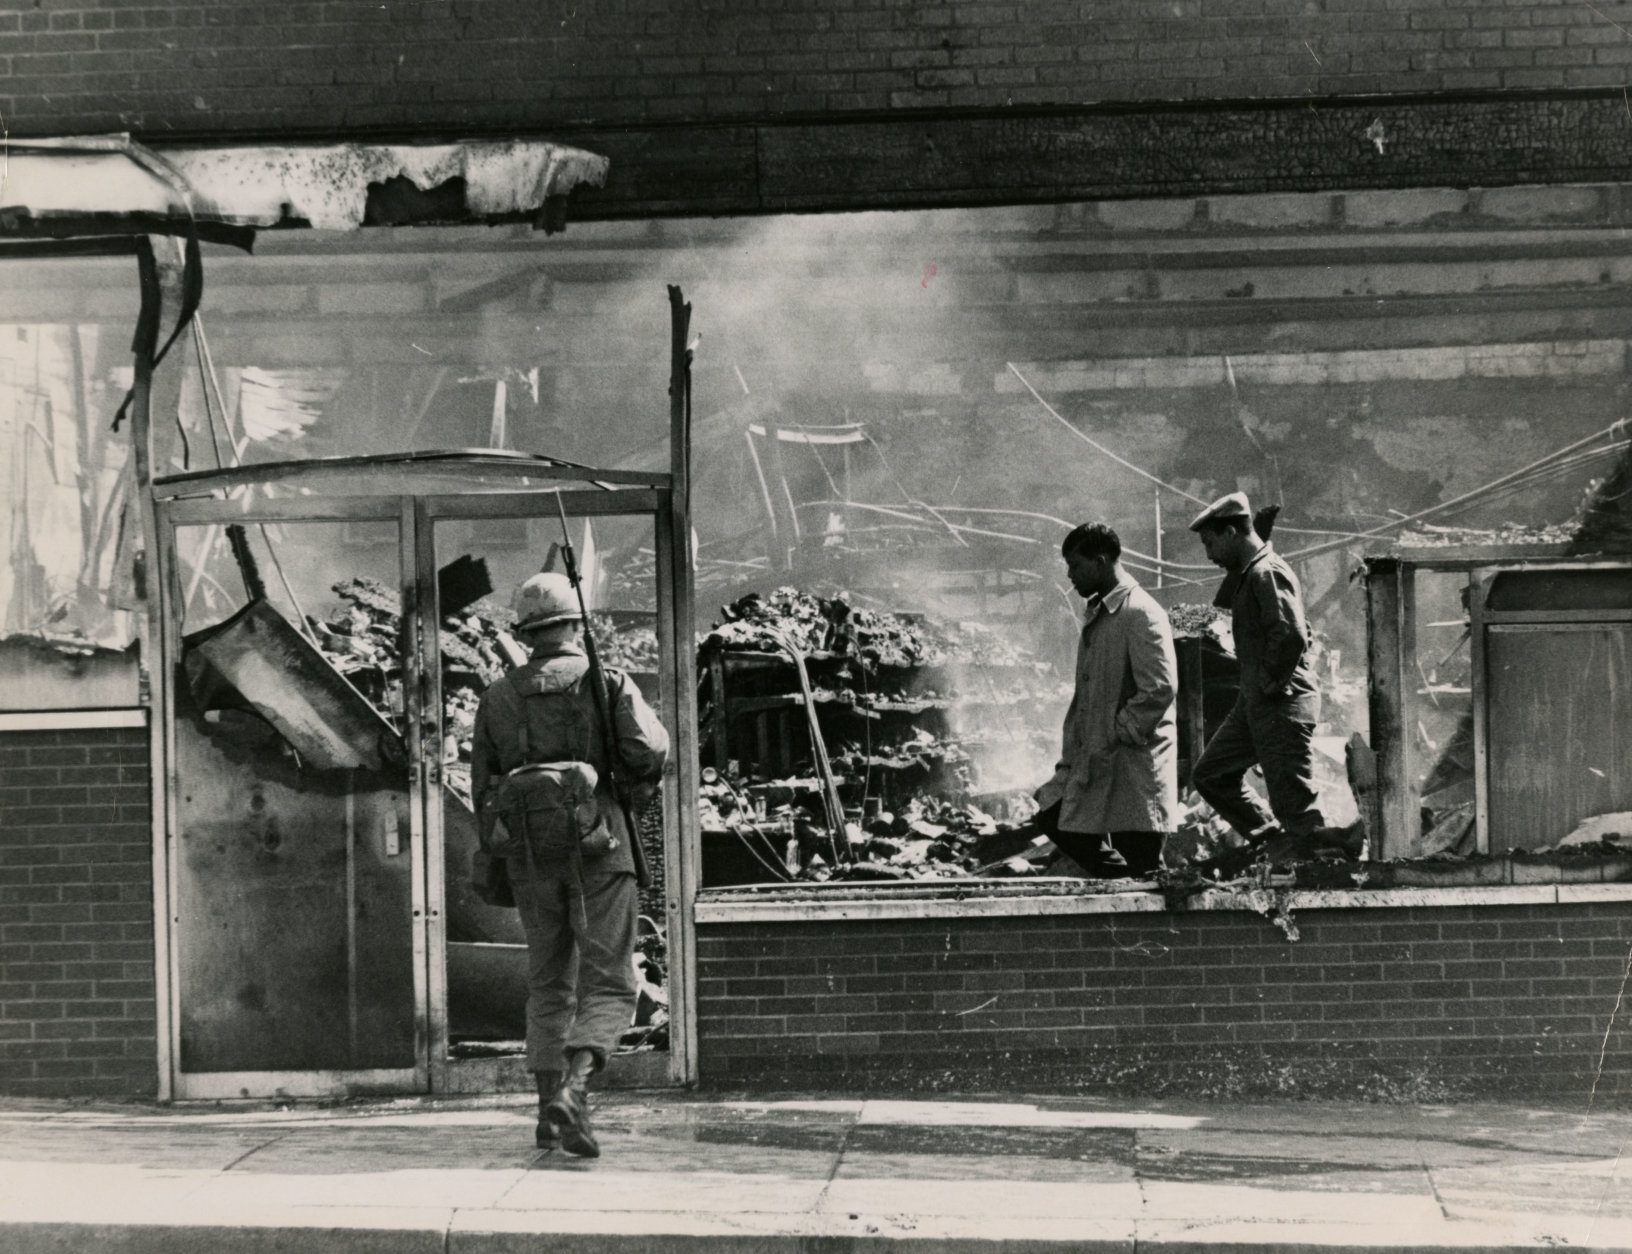 National Guard and federal troops were called into the city amid spiraling violence the day after King's assassination. All told, more than 12,000 troops would patrol D.C. -- the largest federal occupation of an American city since the Civil War. Reprinted with permission of the DC Public Library, Star Collection, © Washington Post.